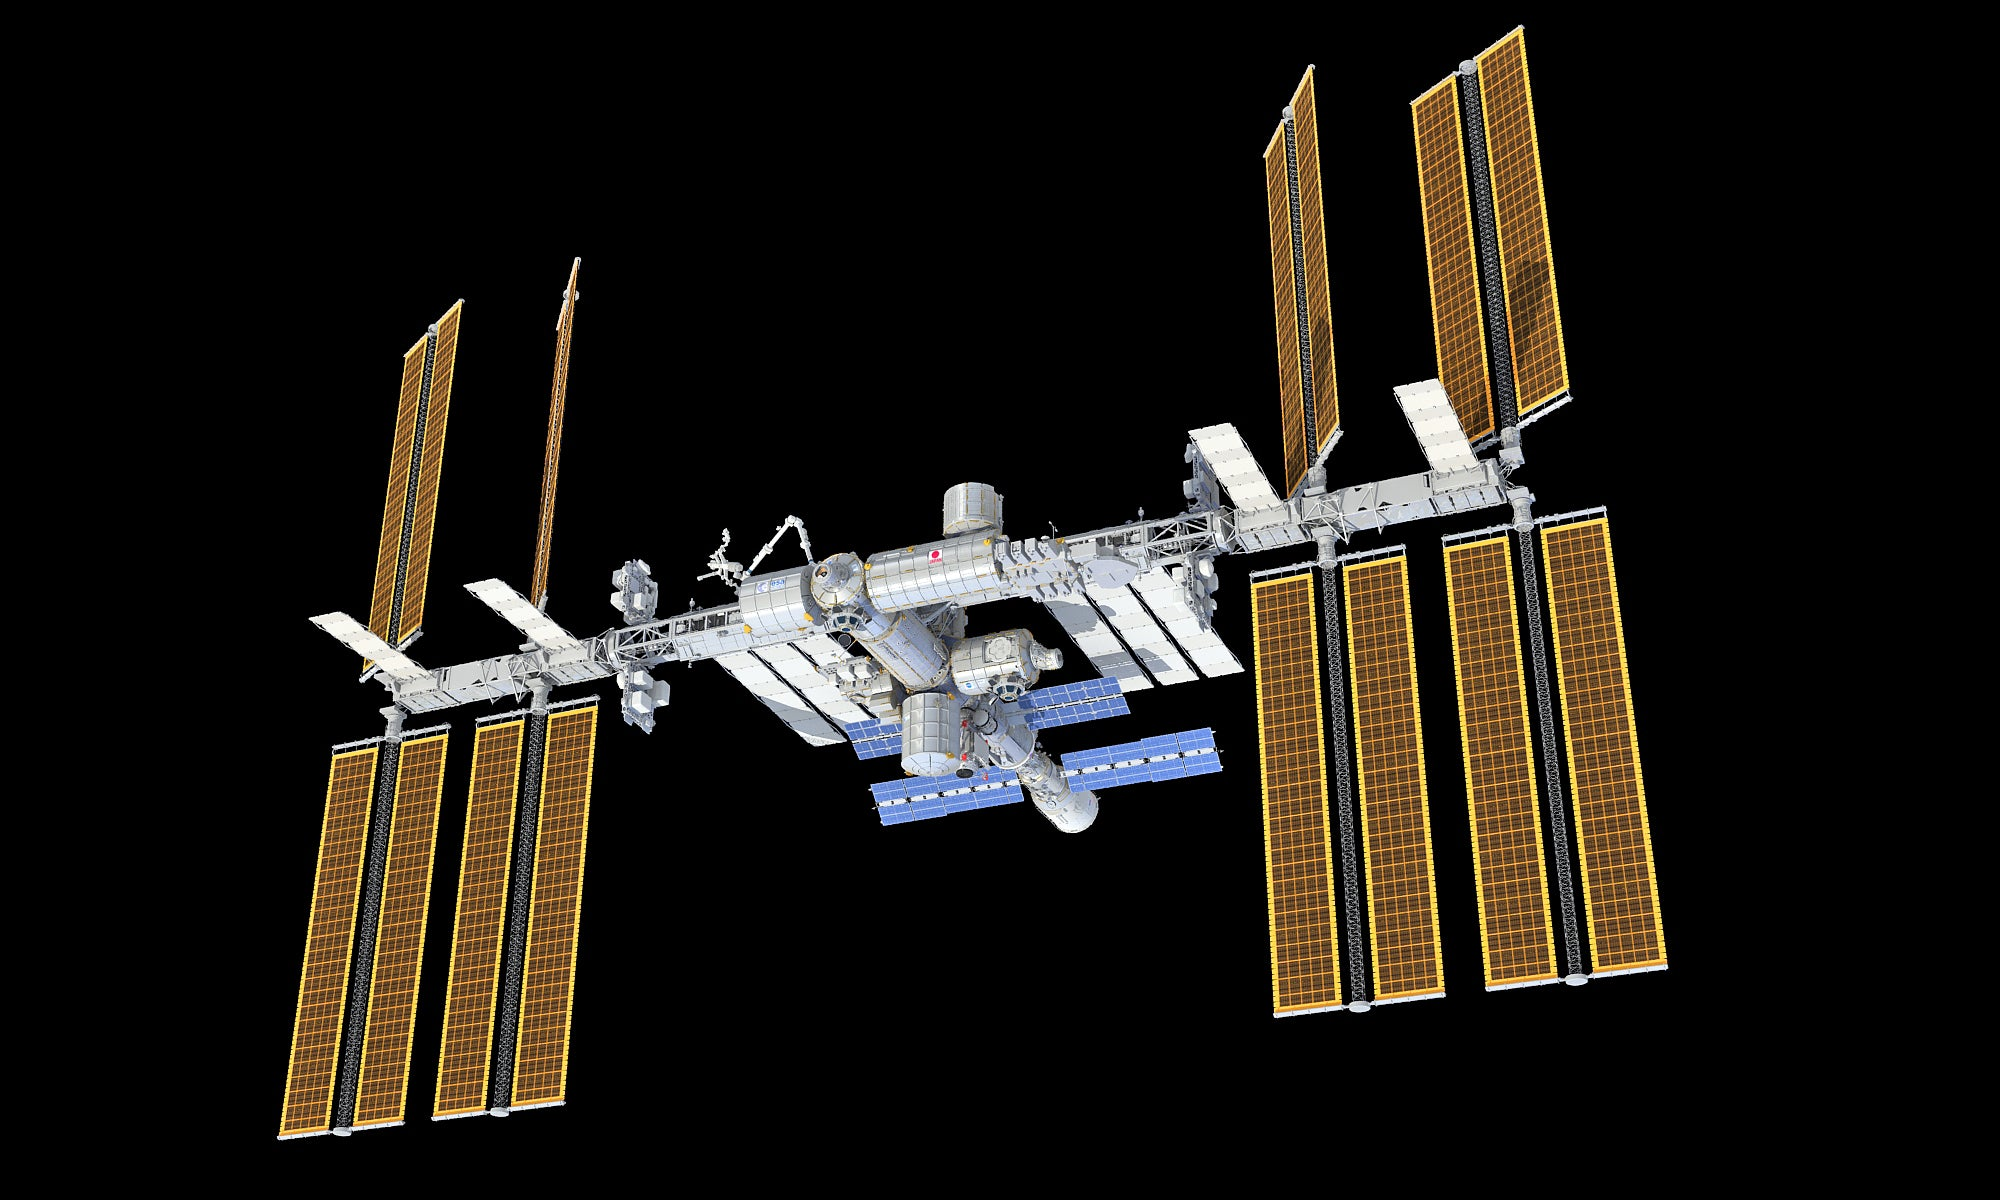 3D ISS International Space Station model